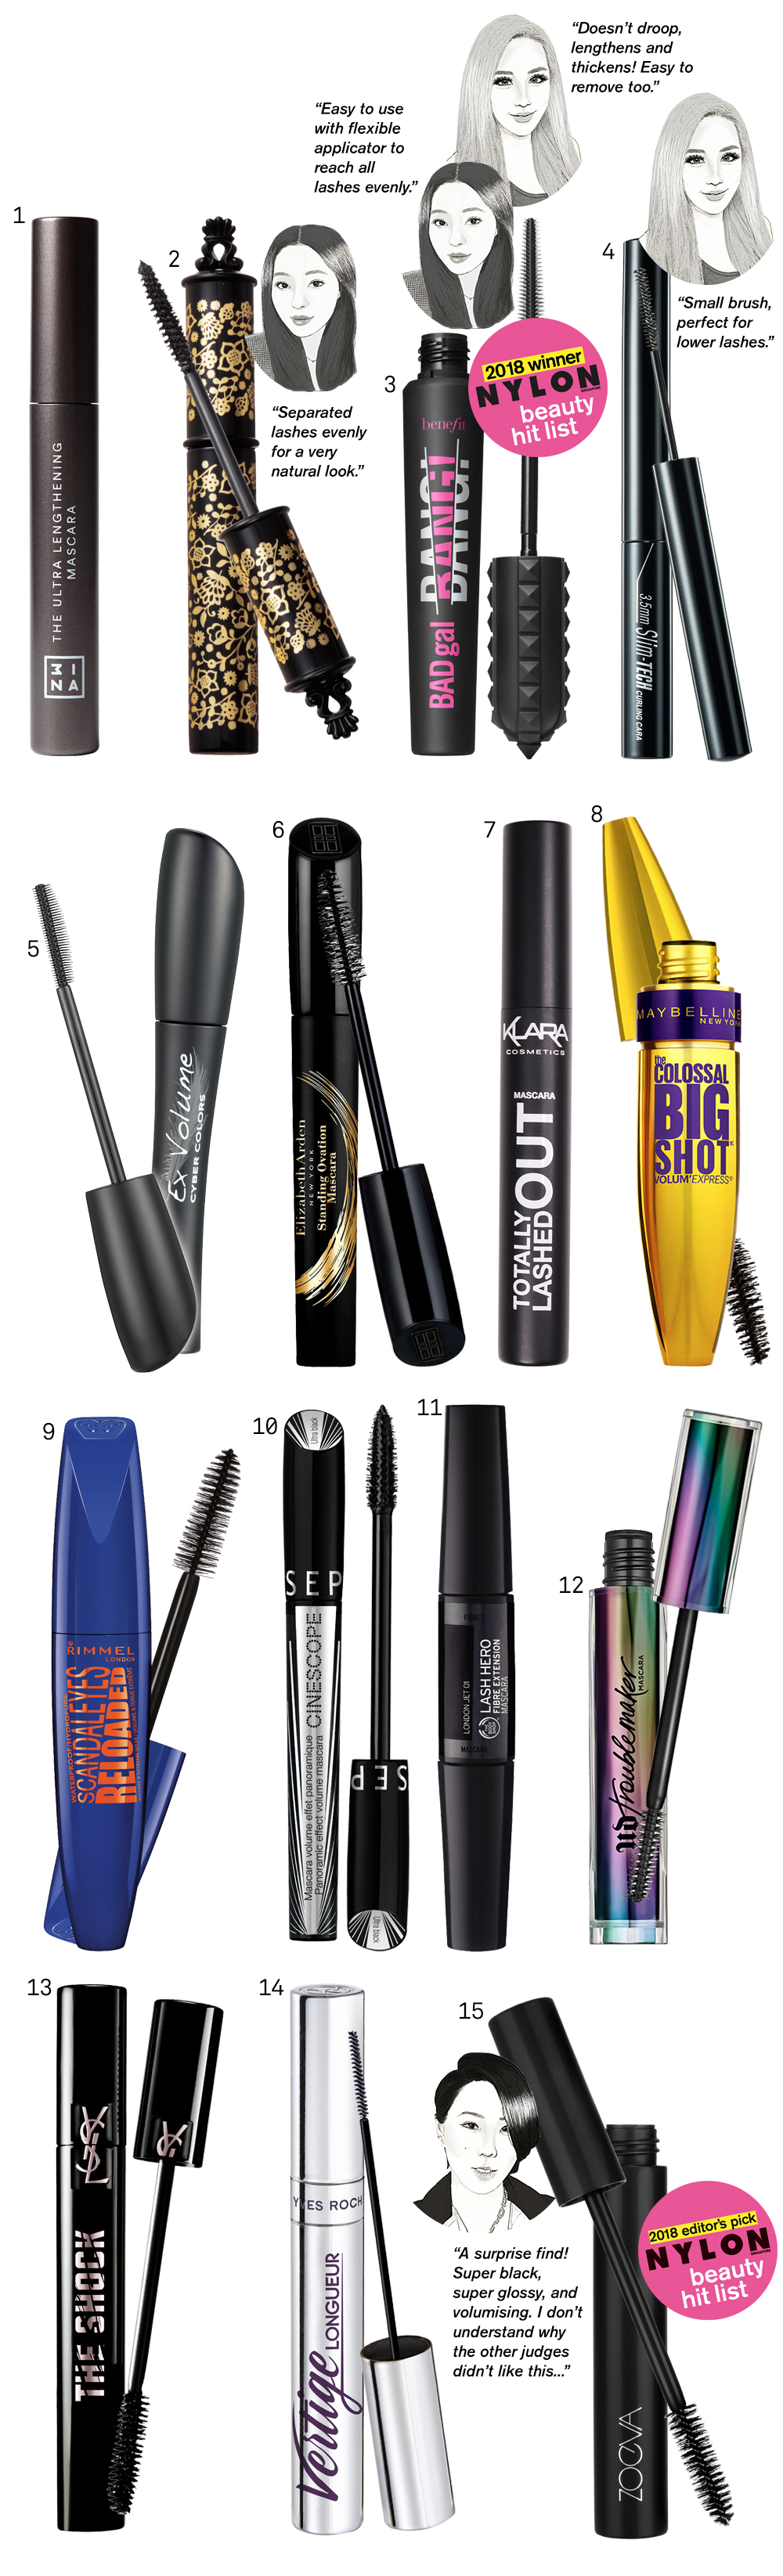 Dc5m United States It In English Created At 2018 07 24 1808 Maybelline Volumamp039 Express The Magnum Mascara Black 6 Pcs 002 16 71